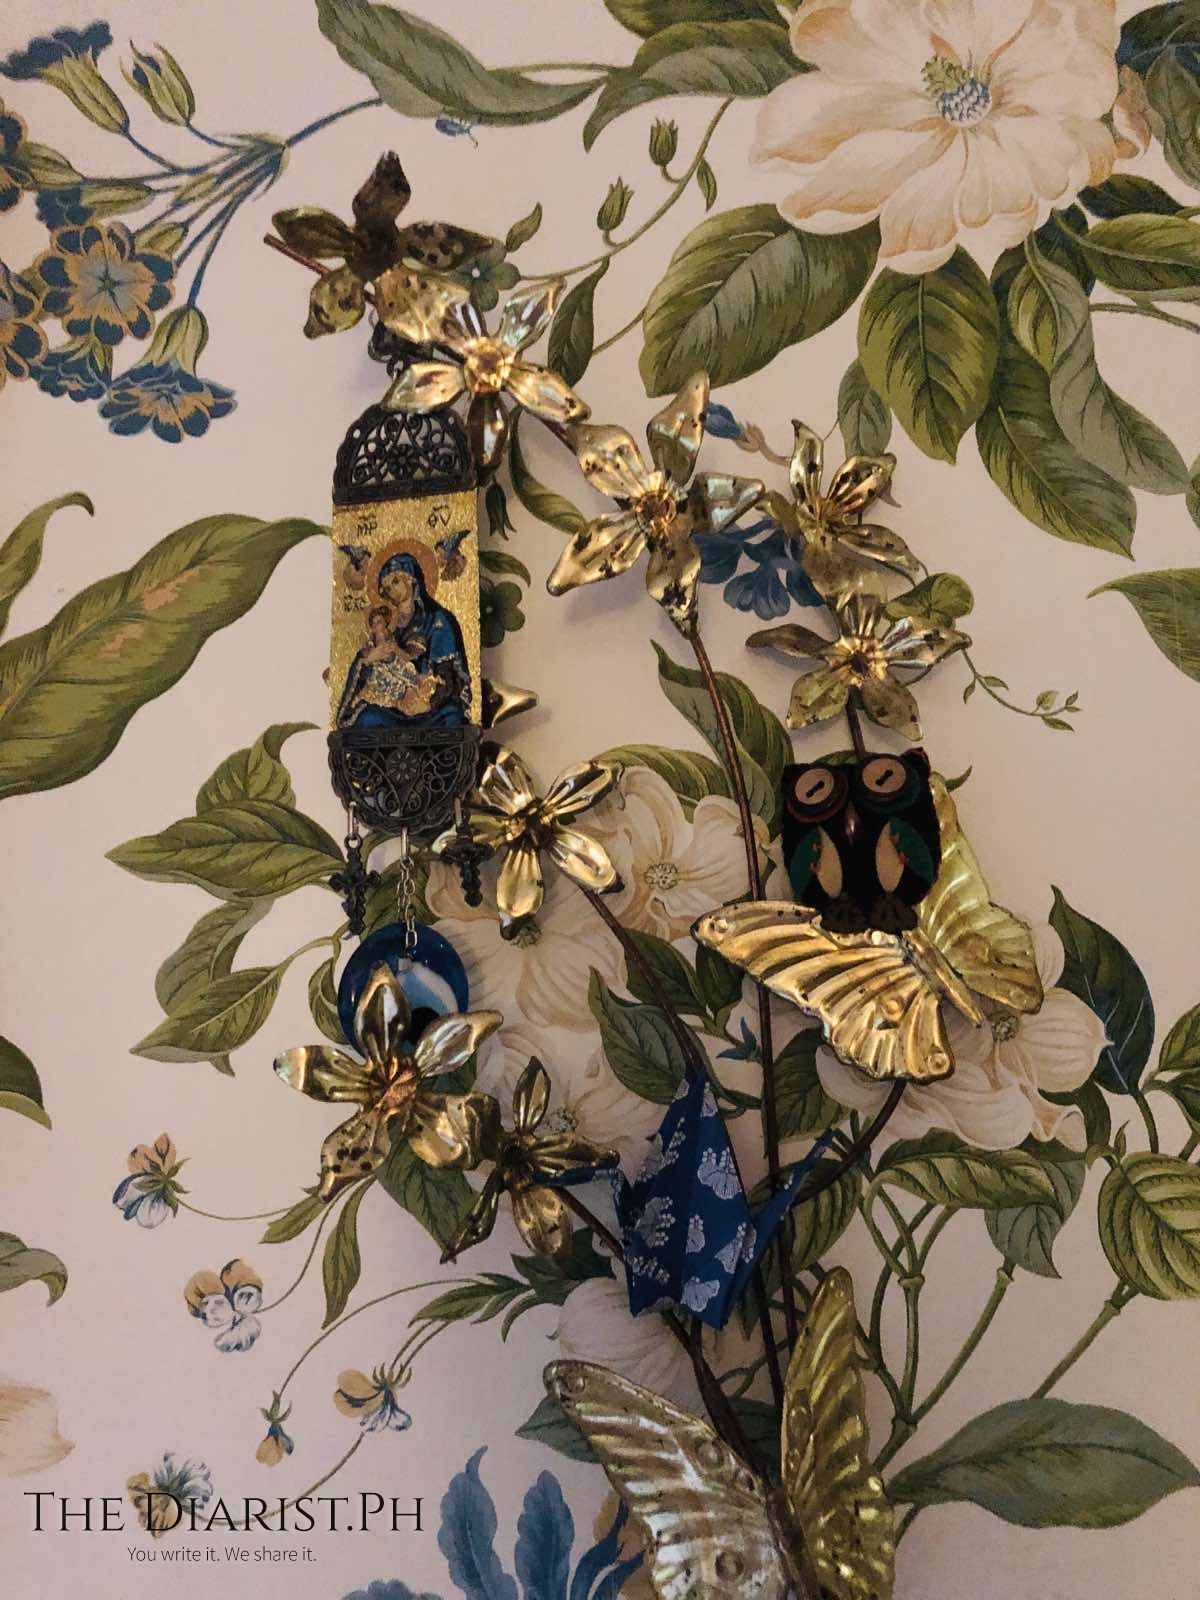 I spend hours creating tablescapes and wallscapes when I feel inspired—stampitas, rosaries, little souvenirs collected through the years, each like a daily prayer.